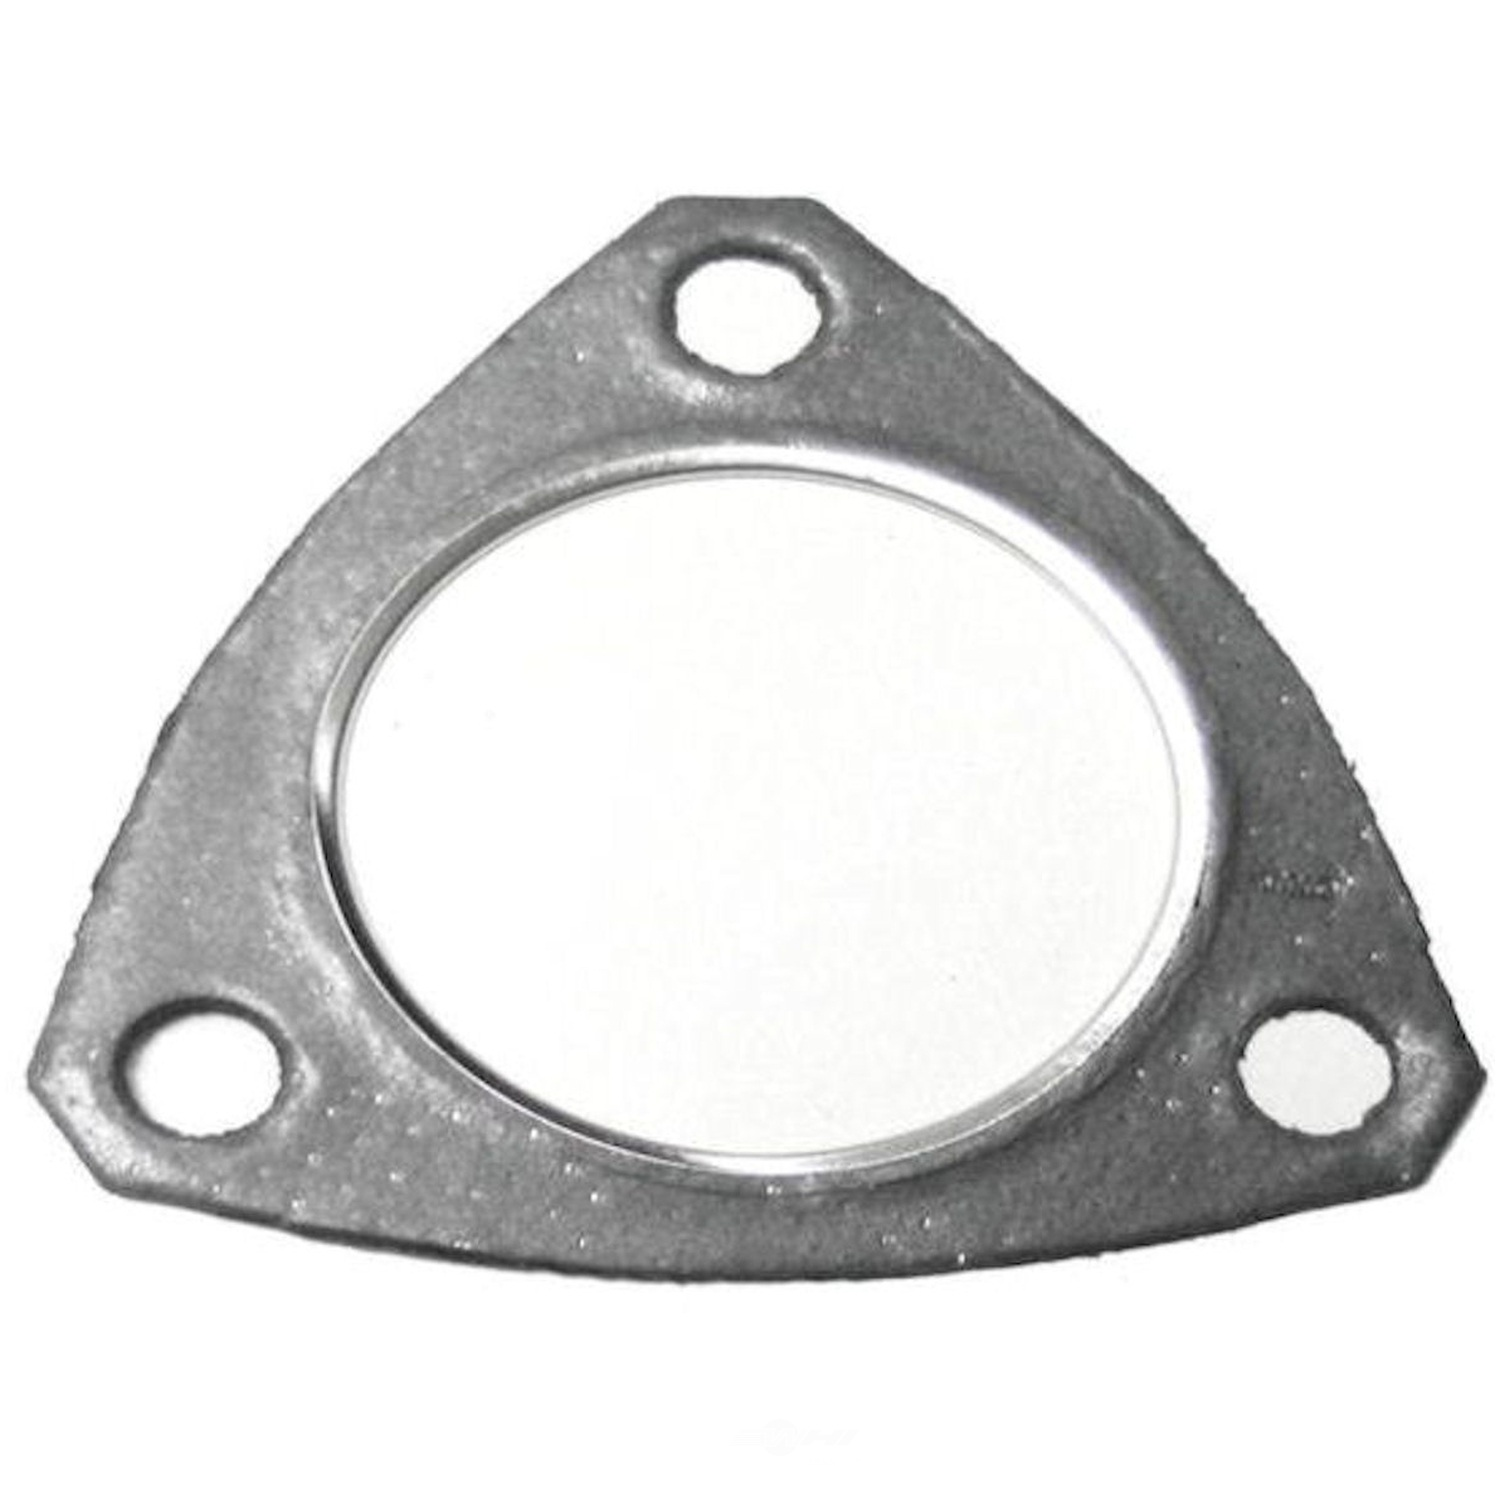 BOSAL 49 STATE CONVERTERS - Exhaust Pipe Flange Gasket (Outlet) - BSF 256-846